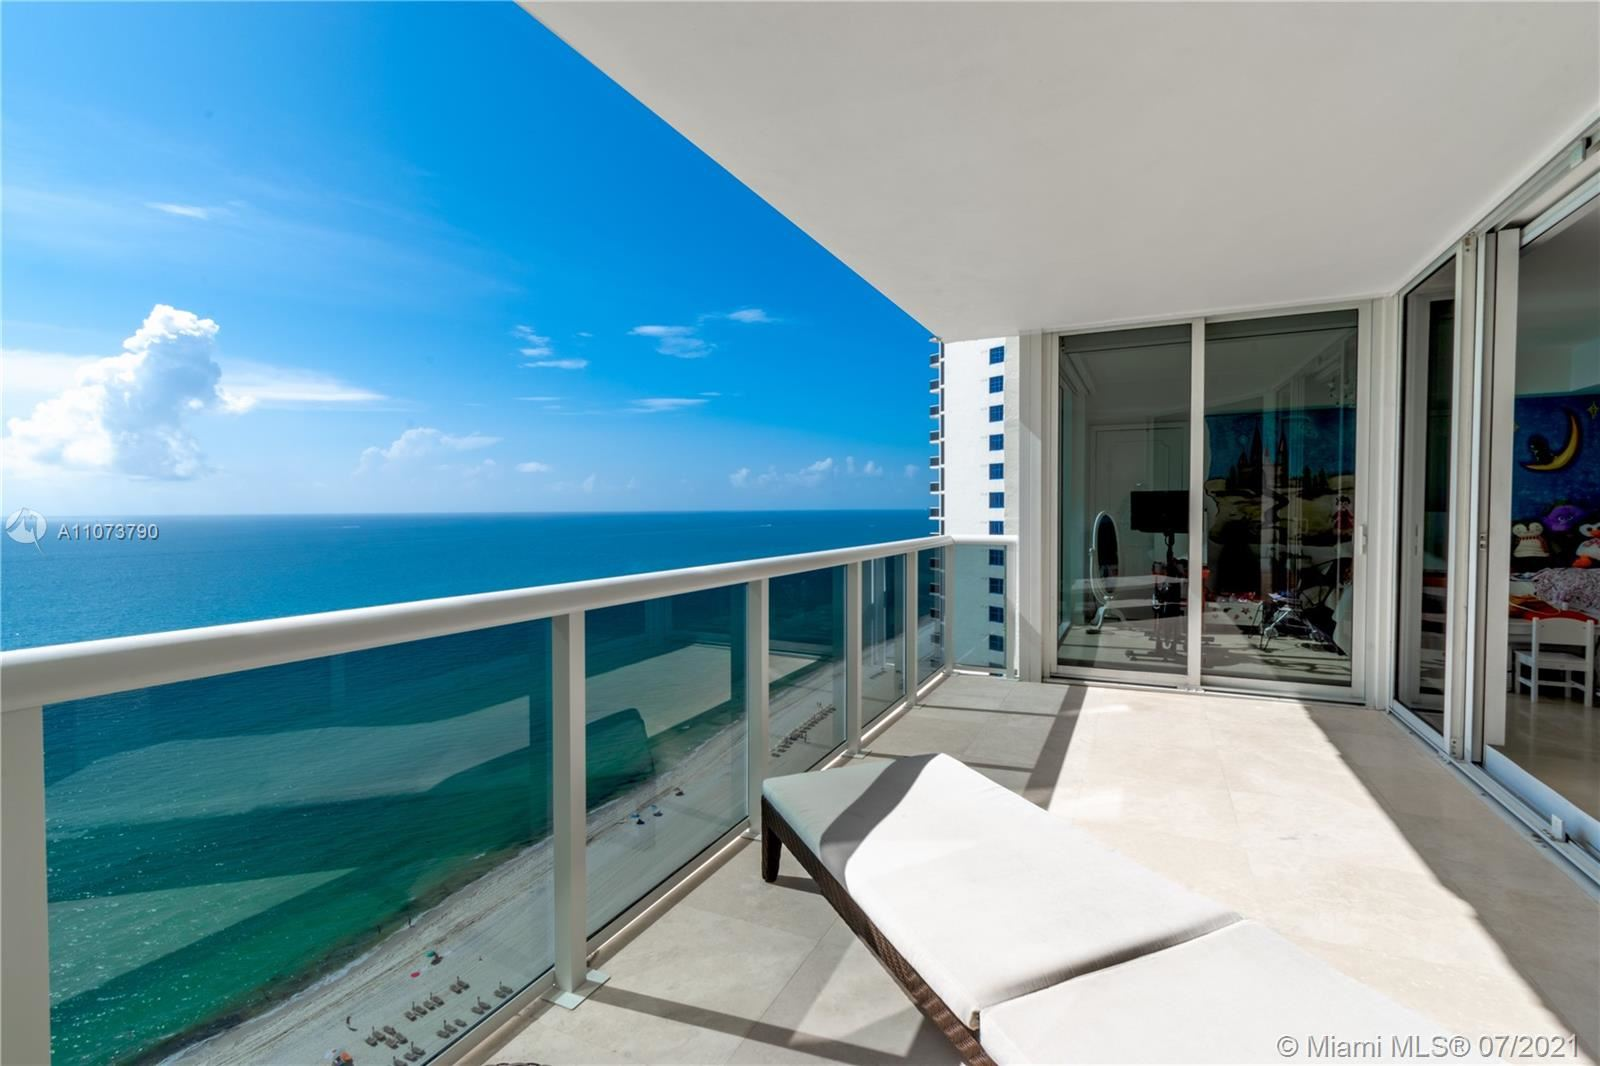 19111 Collins Ave #2403, Sunny Isles, FL 33160 - #: A11073790